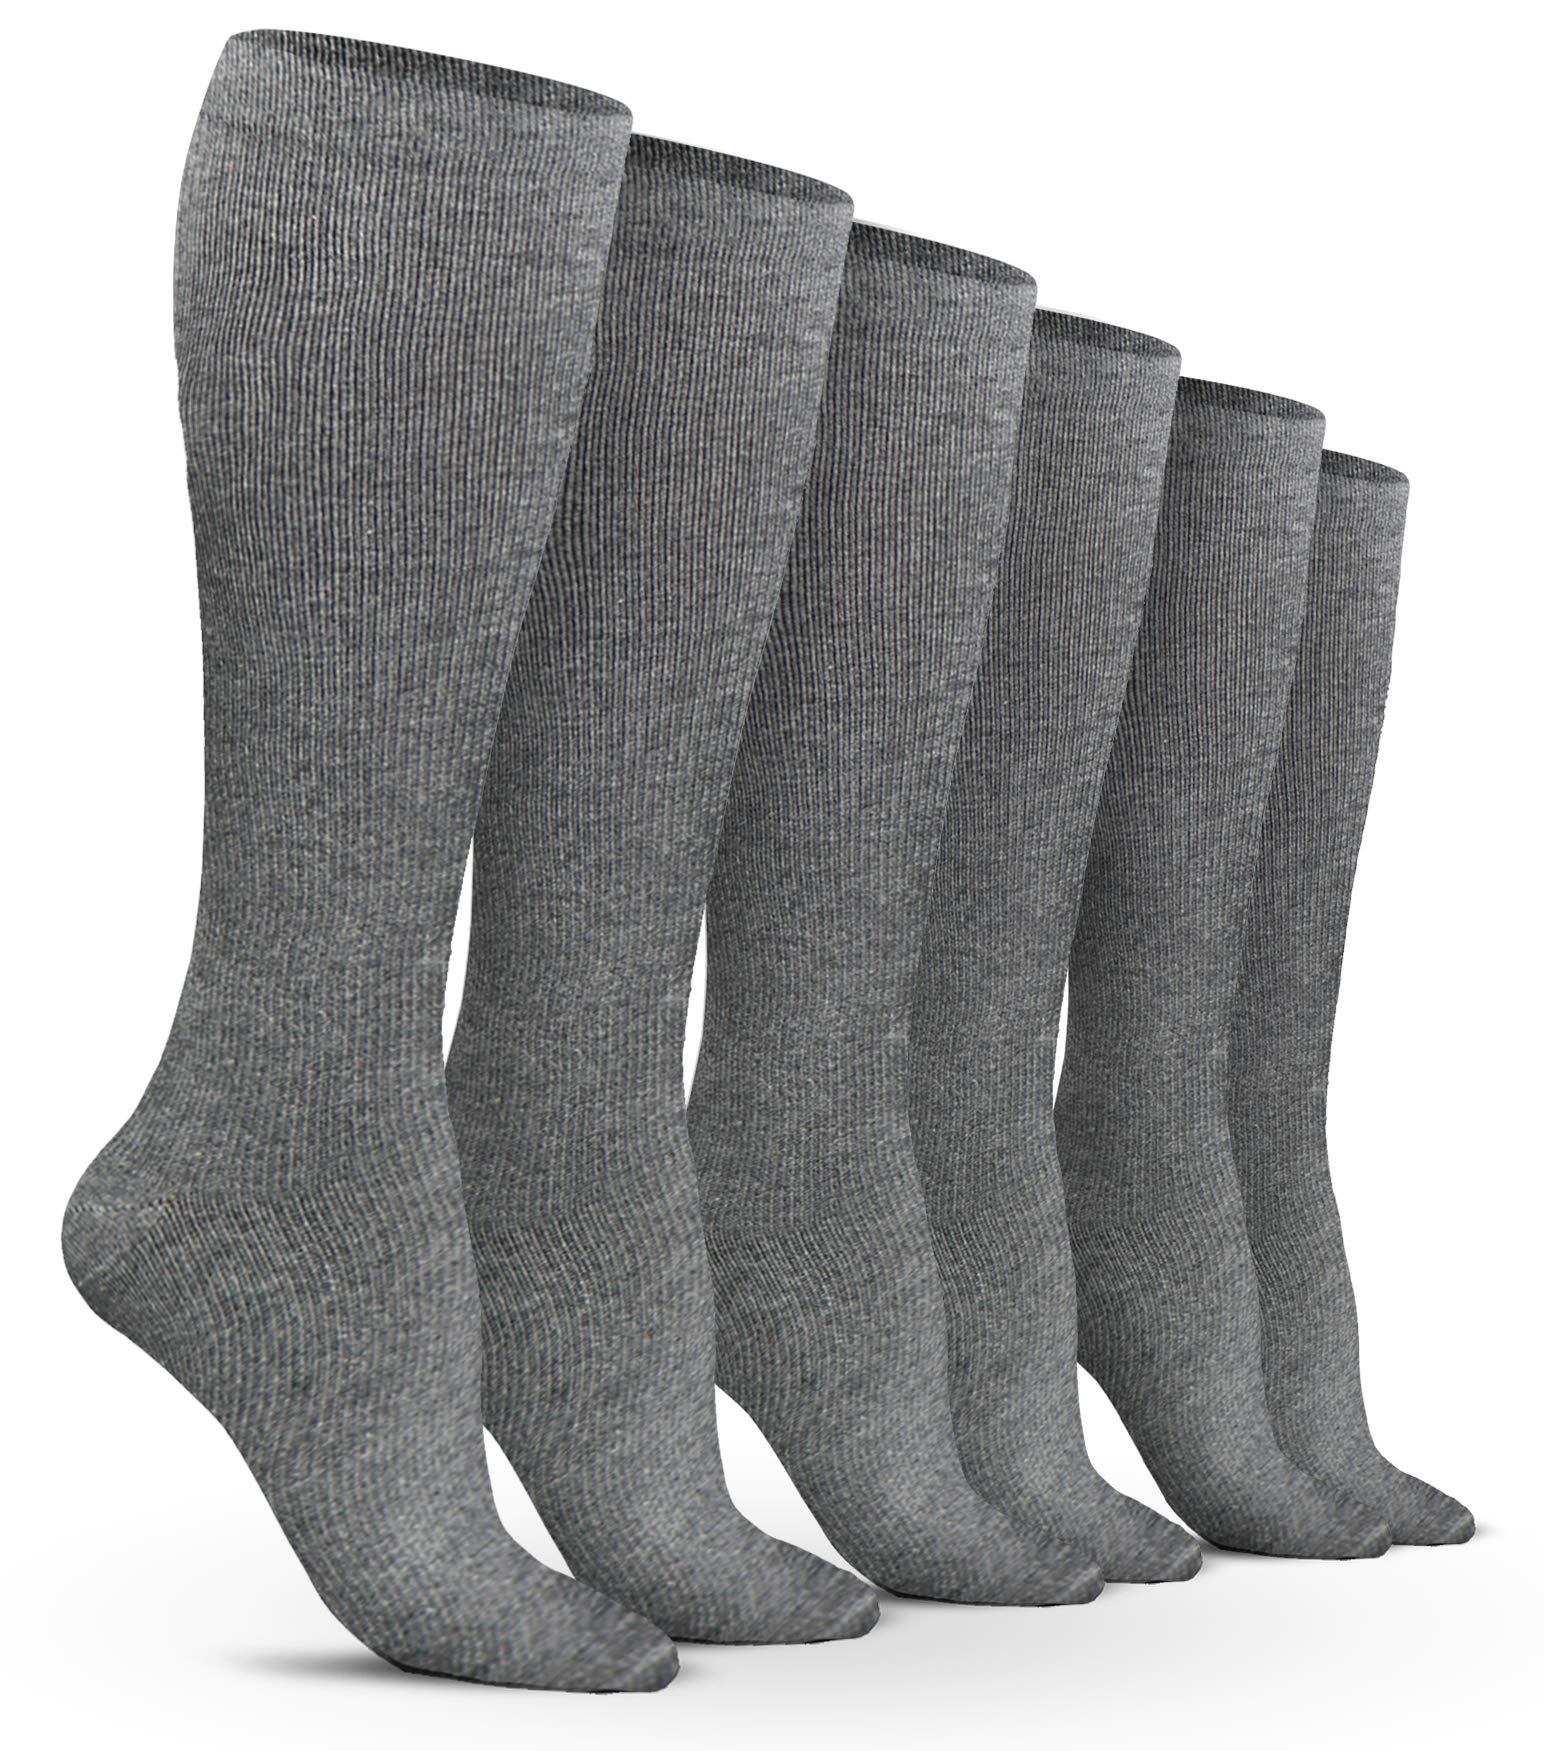 Women's Compression Socks (6 Pack) - L/XL - Gray - Graduated Muscle Support, Relief and Recovery. Great for Running, Medical, Athletic, Diabetic, Travel, Pregnancy, Nursing (8-15 mmHg)